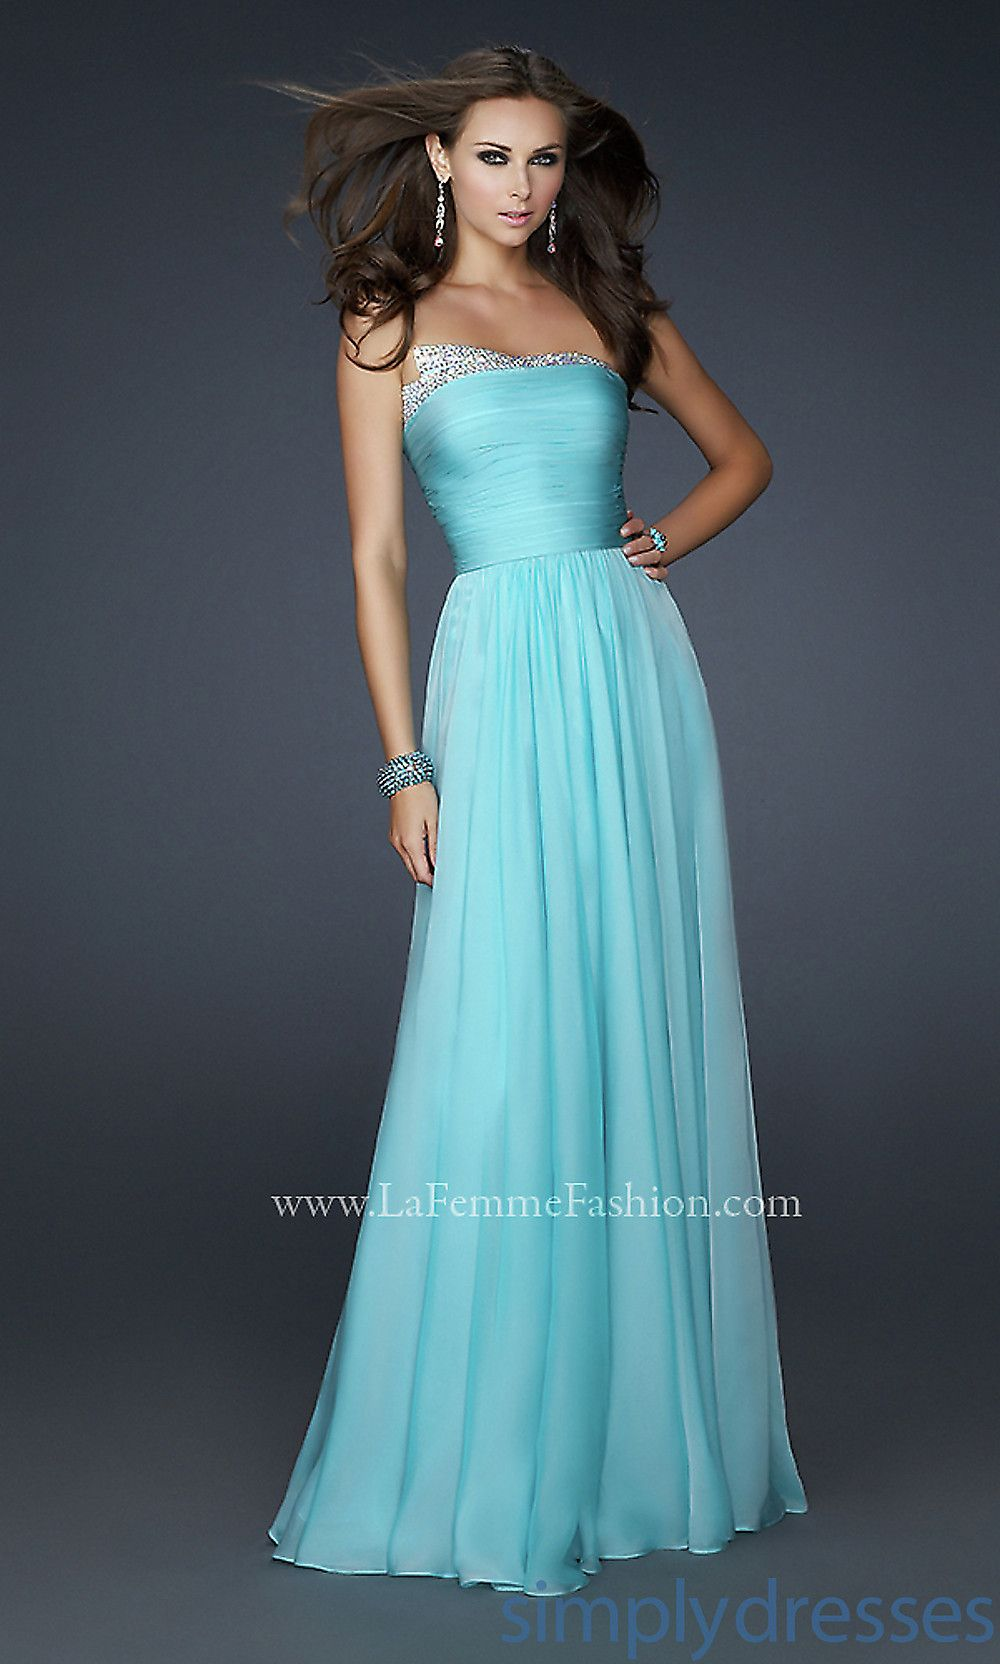 e28b49648d blue with a touch of sparkle bridesmaid dress... love this style and the  little added sparkle! Maybe just another color 3